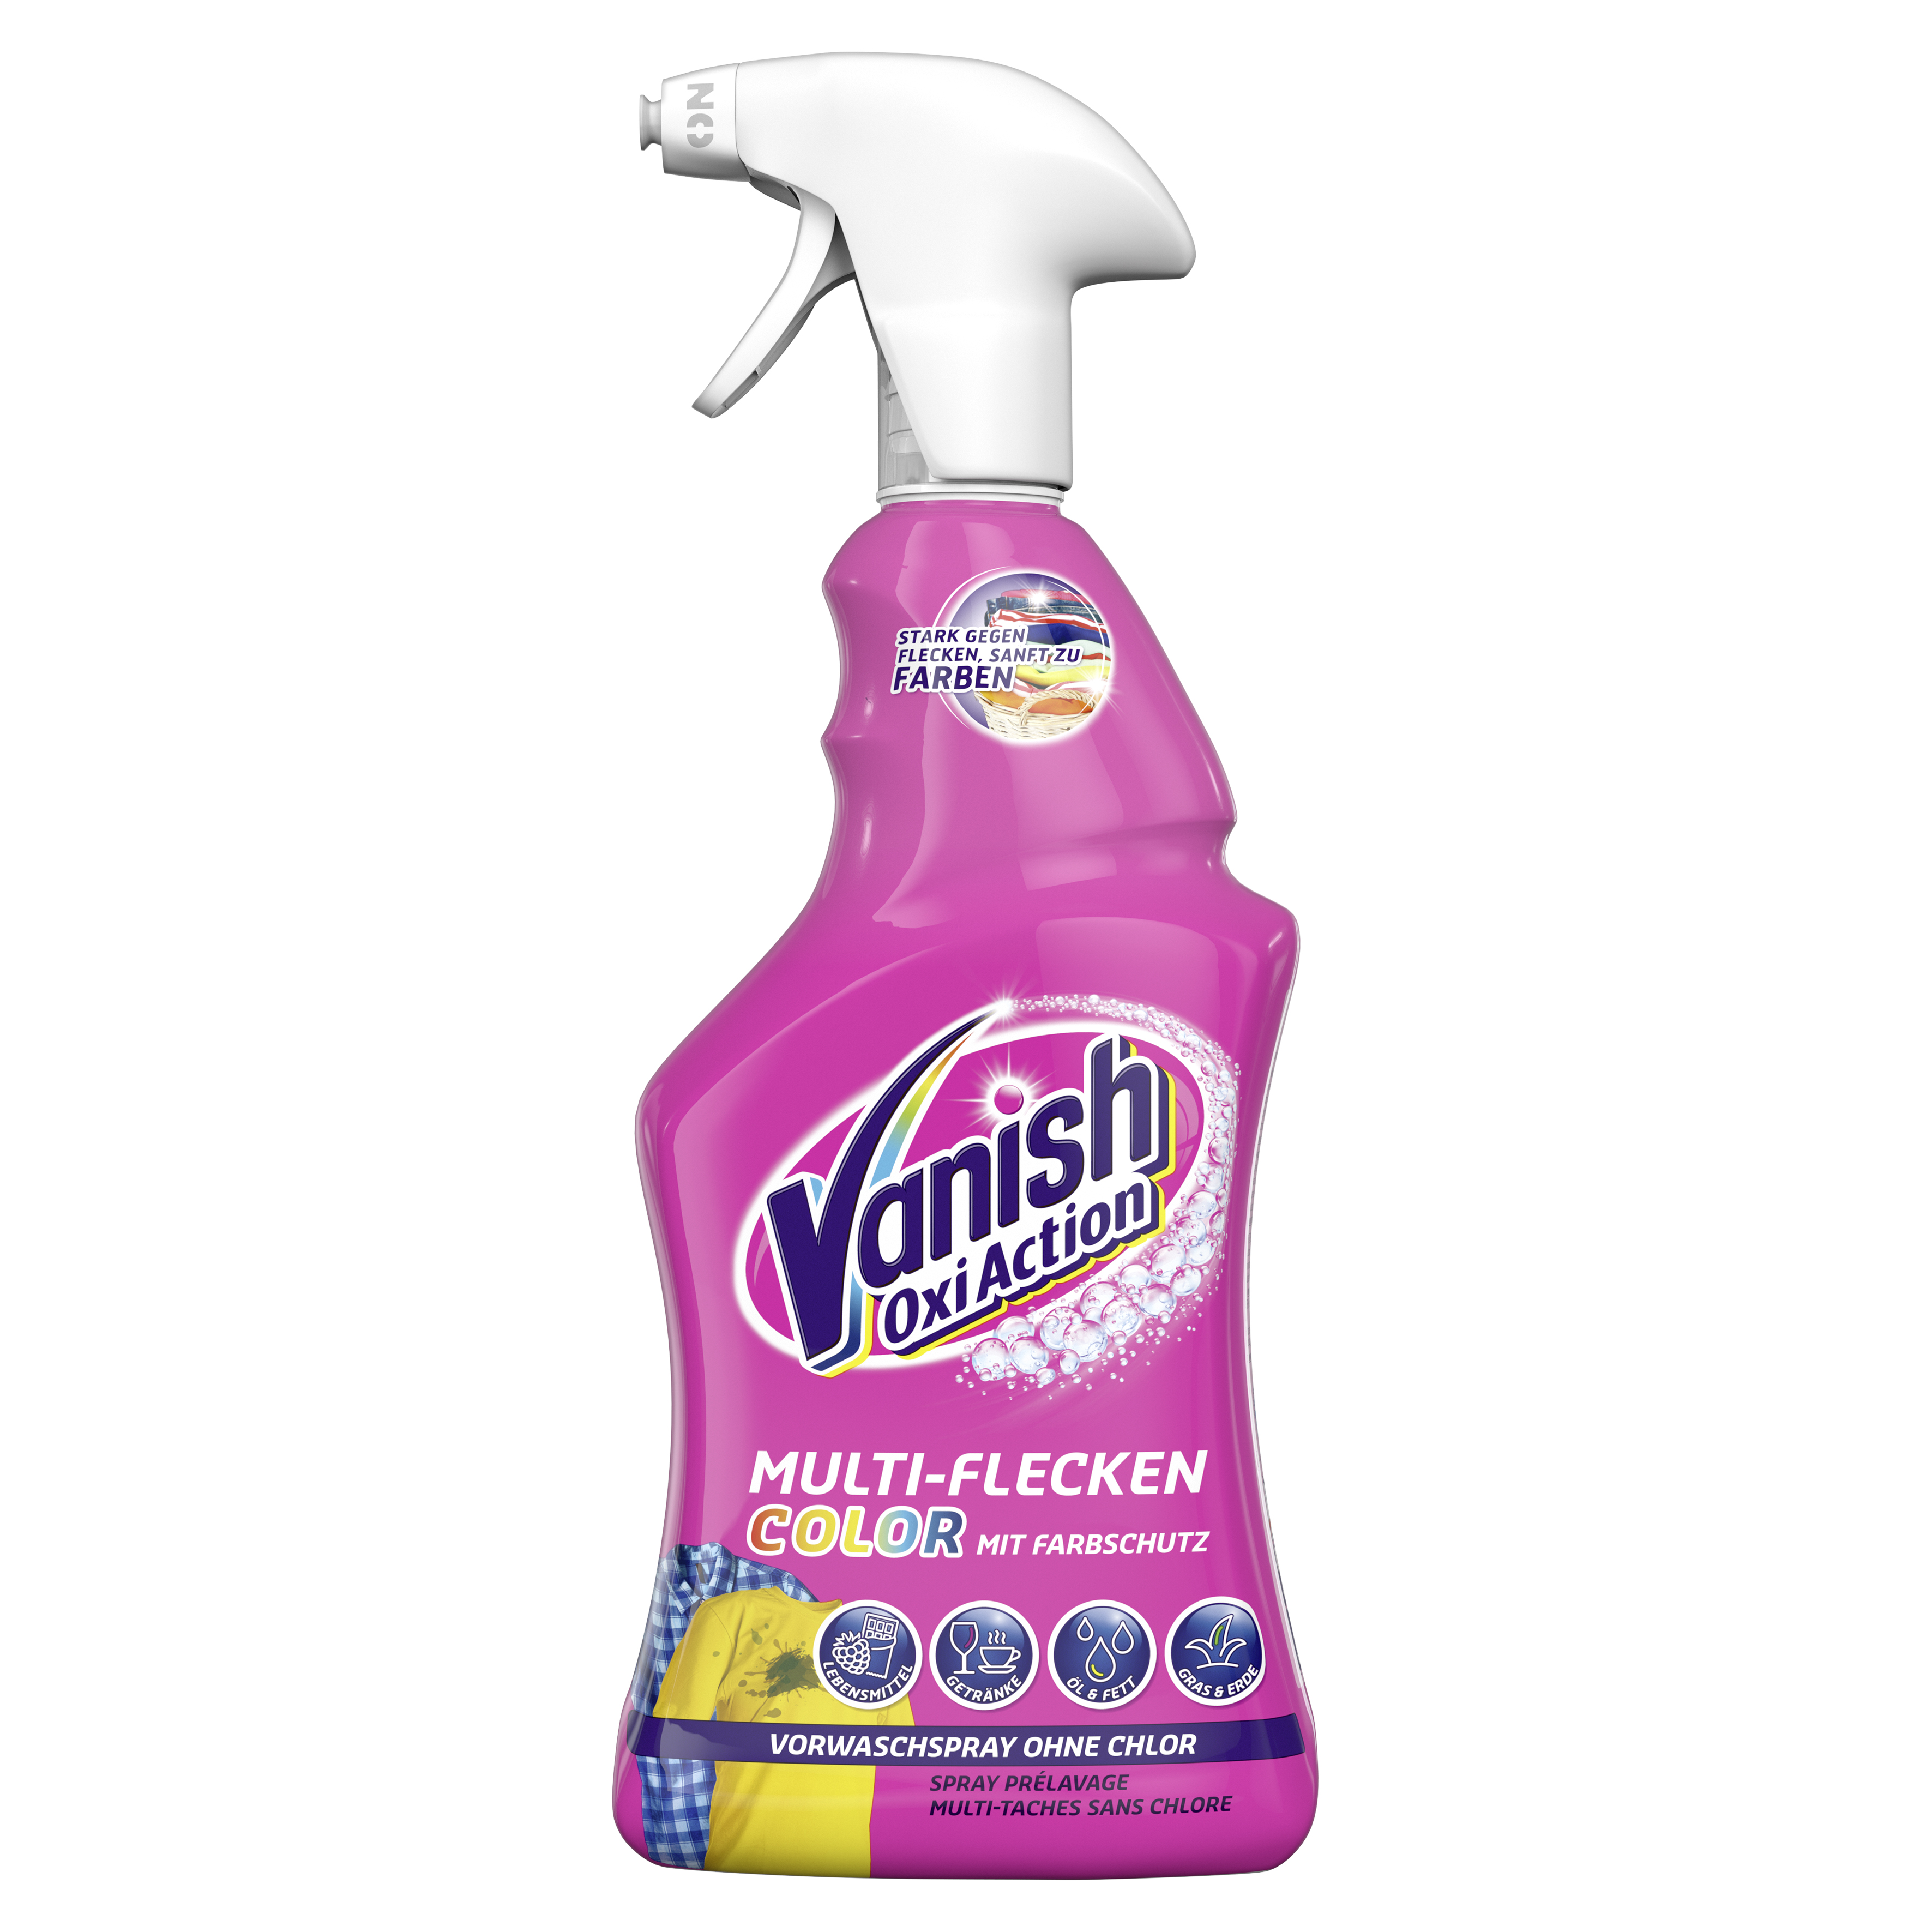 Vanish Oxi Action Multi-Flecken Vorwaschspray 750ml